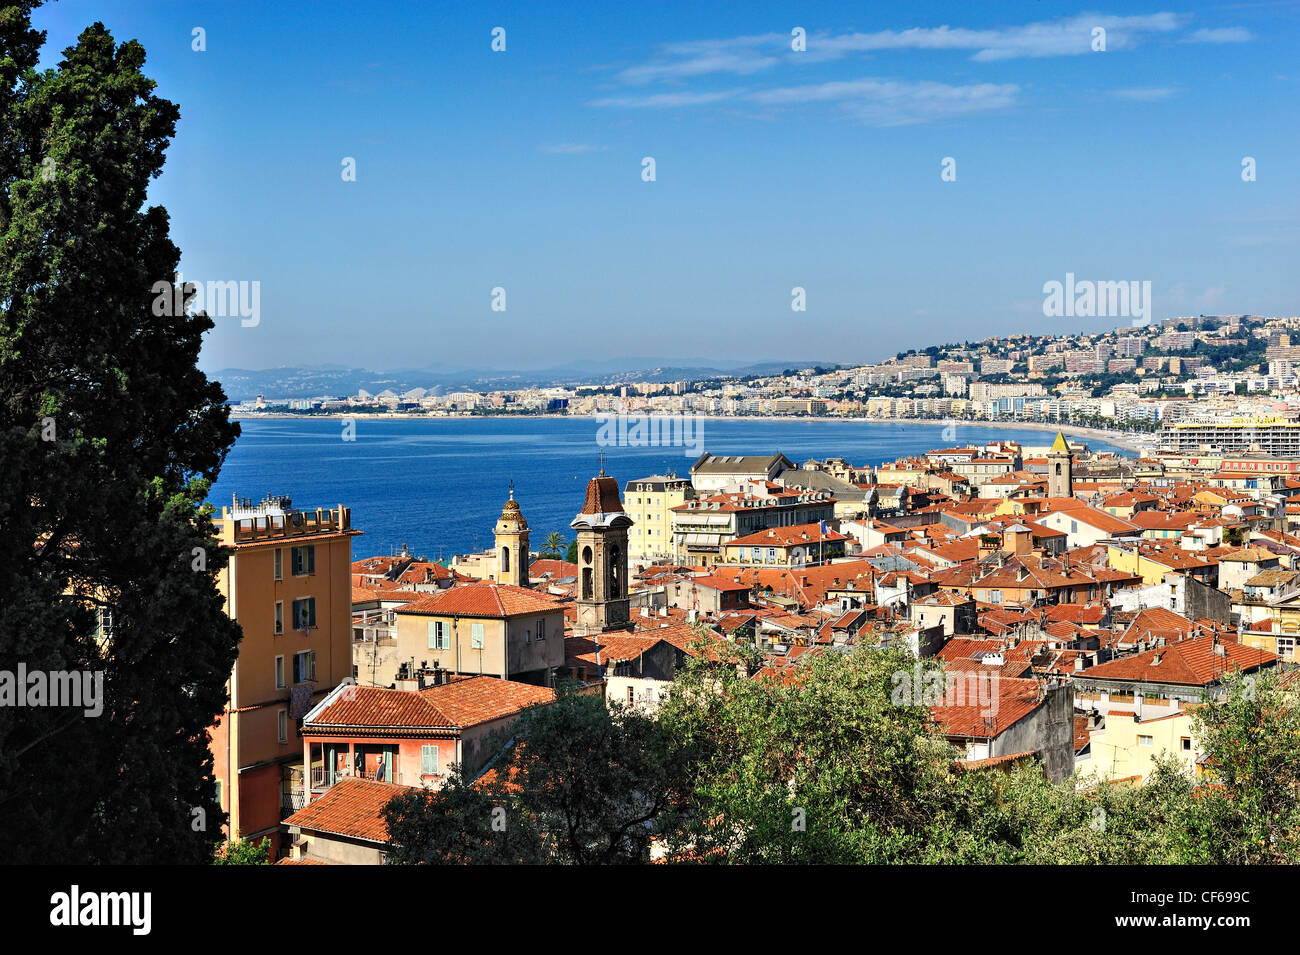 Overview of Nice, Cote d'Azur, France. - Stock Image